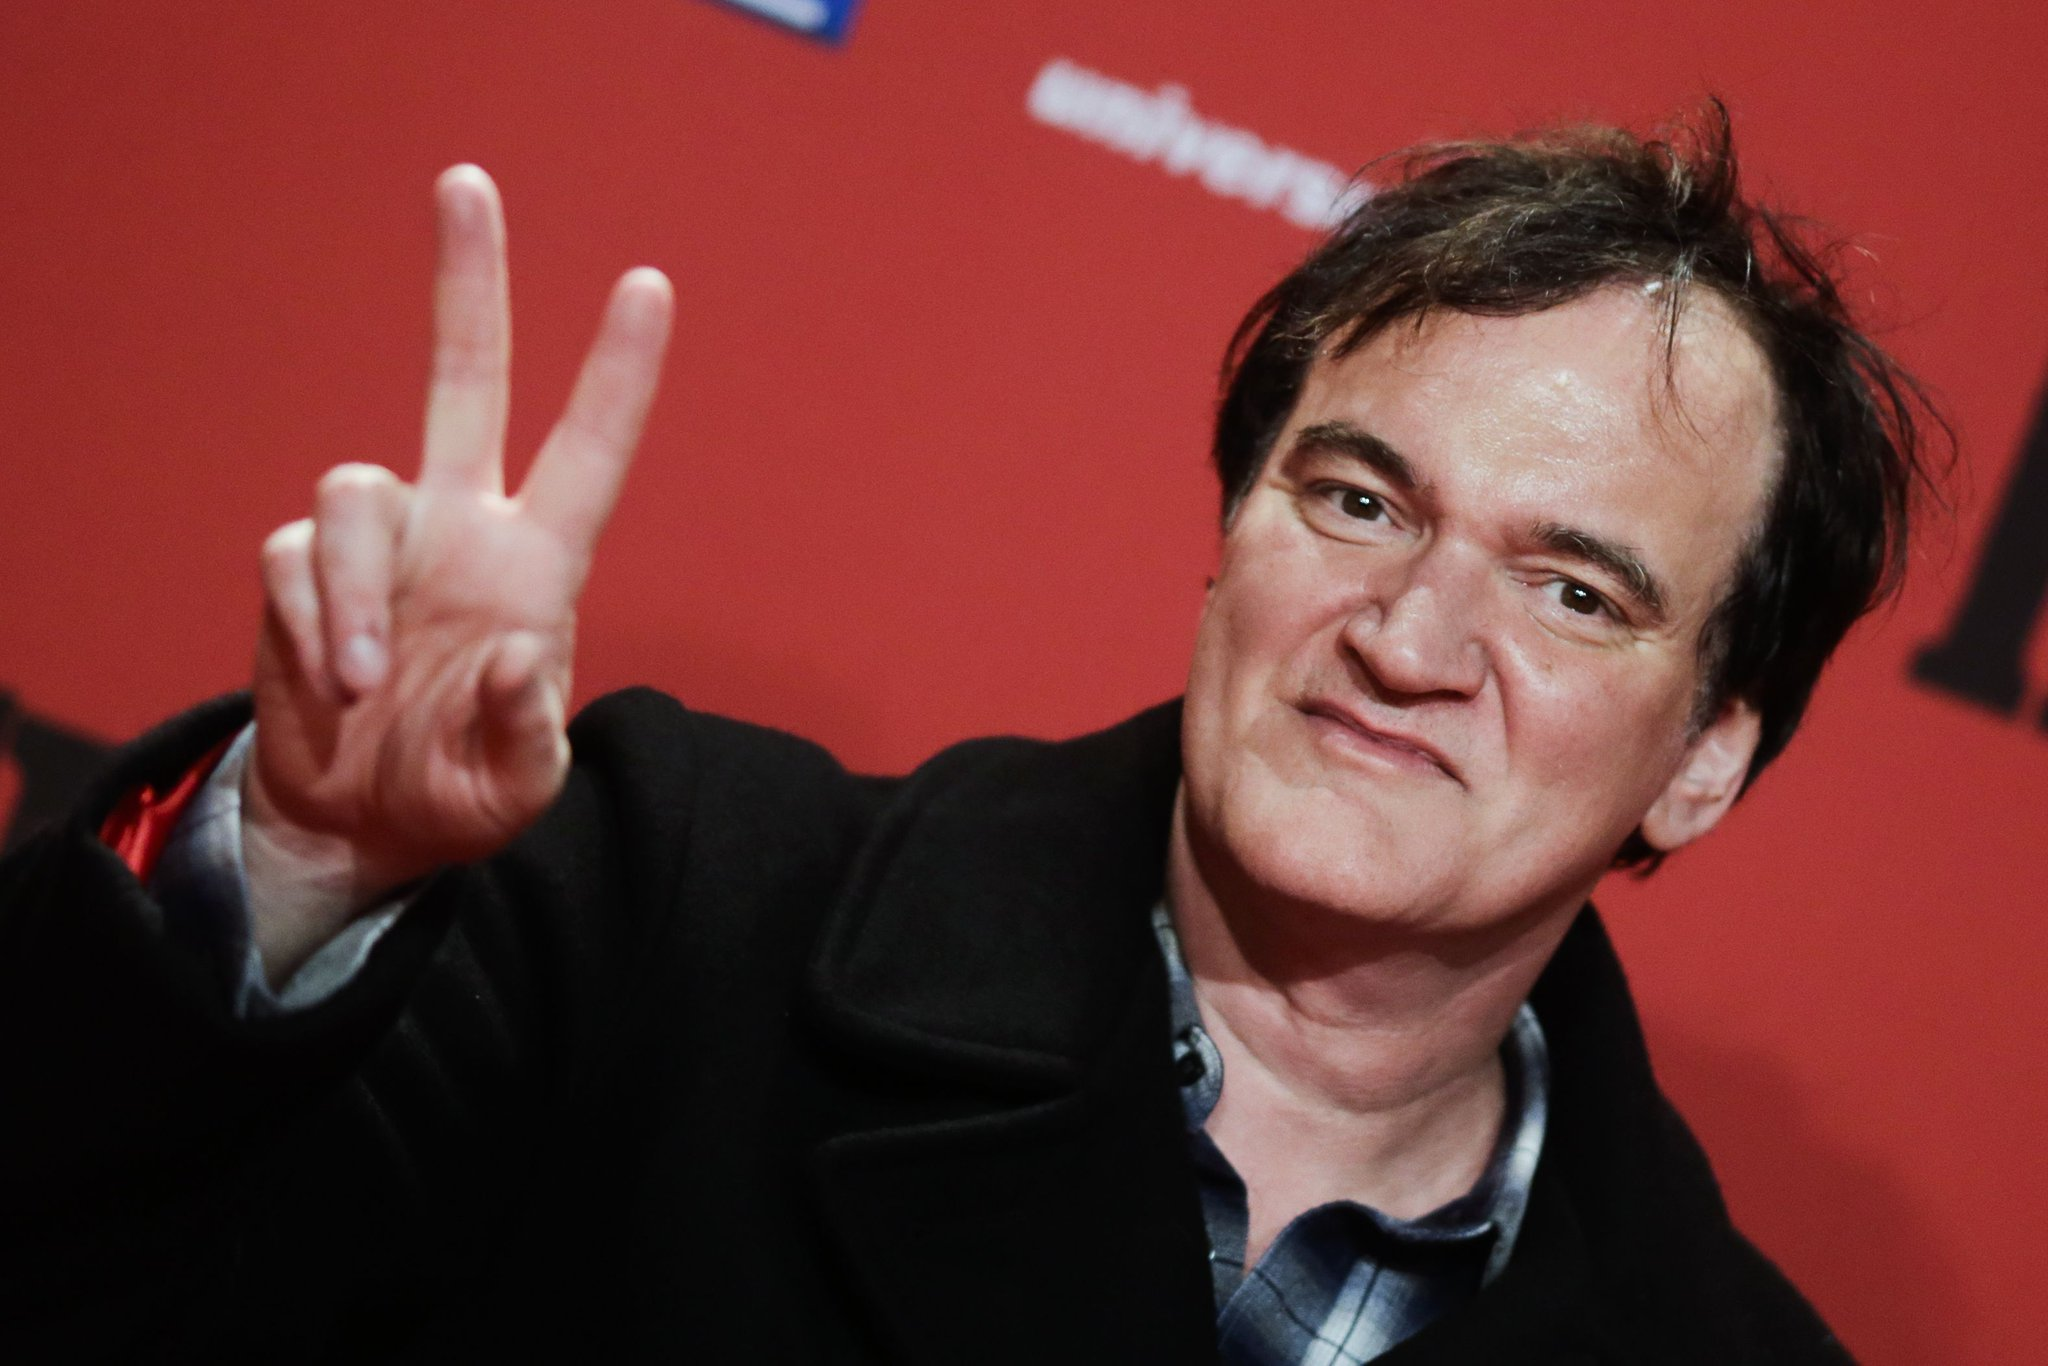 Quentin Tarantino is working on a 'great idea' for a new #StarTrek movie that he may direct: https://t.co/r33ges1QKW https://t.co/28lS98dtMd